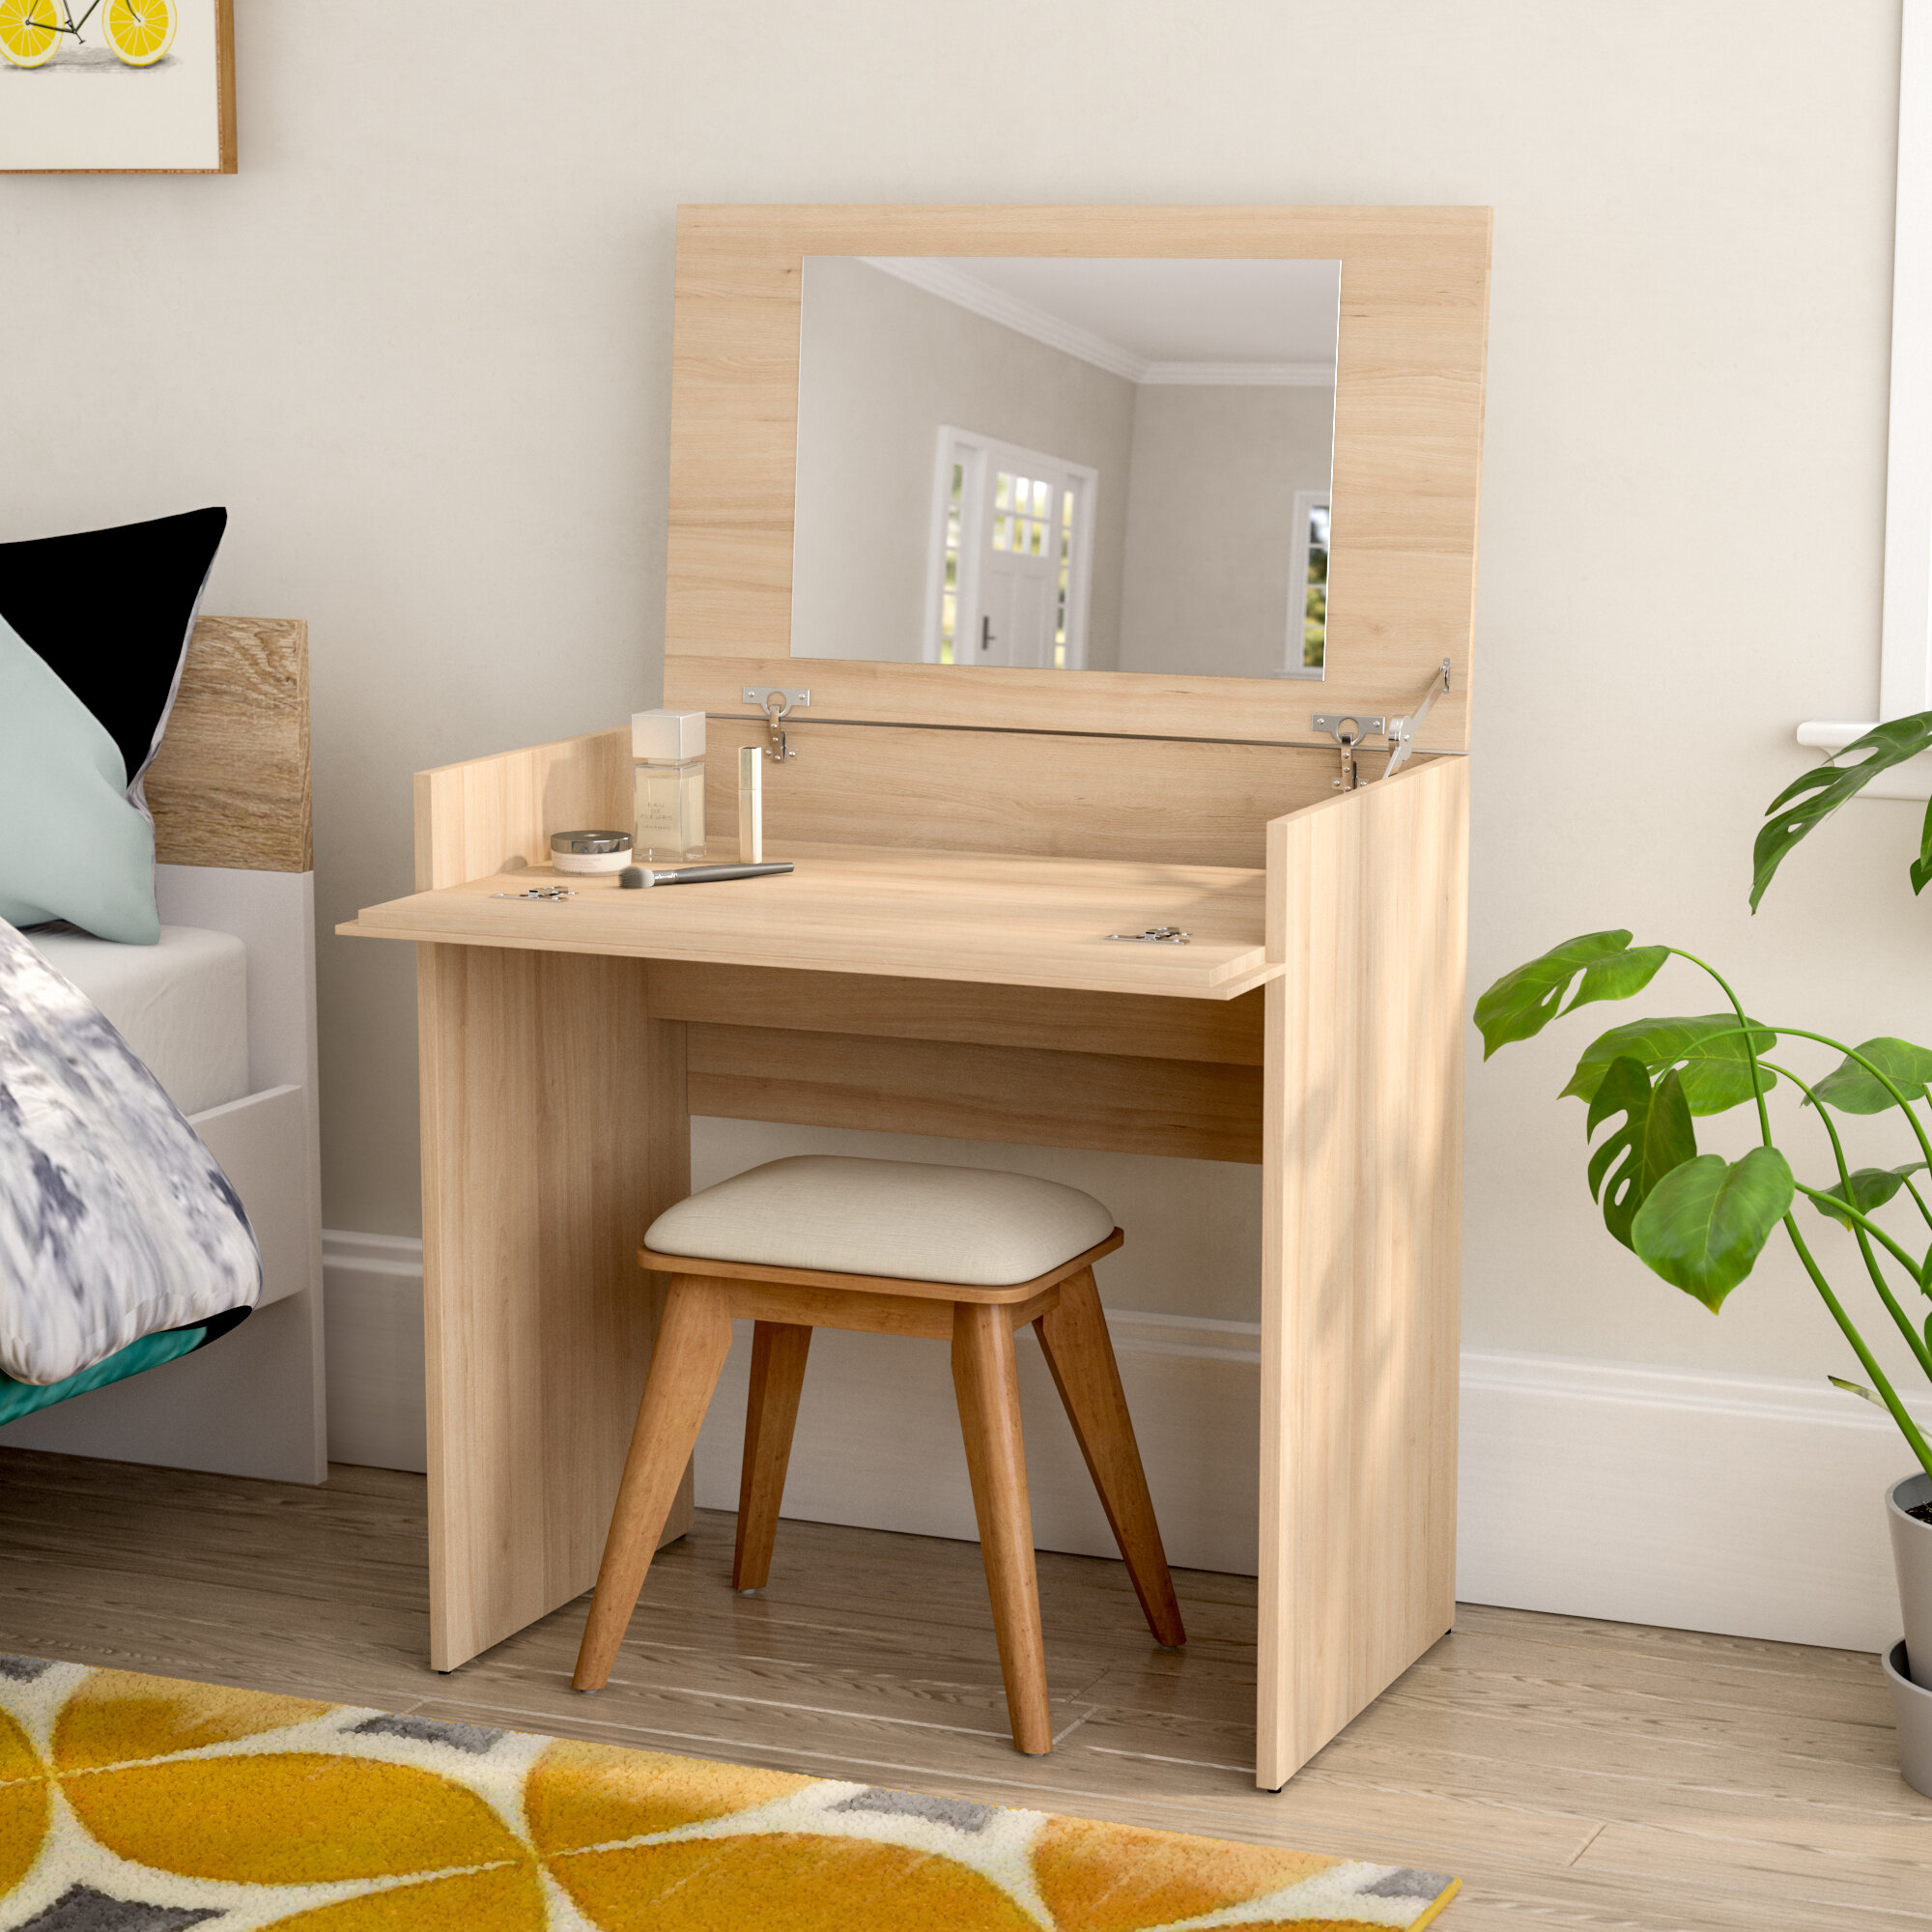 Wondrous Jansen Vanity Set With Mirror Gmtry Best Dining Table And Chair Ideas Images Gmtryco